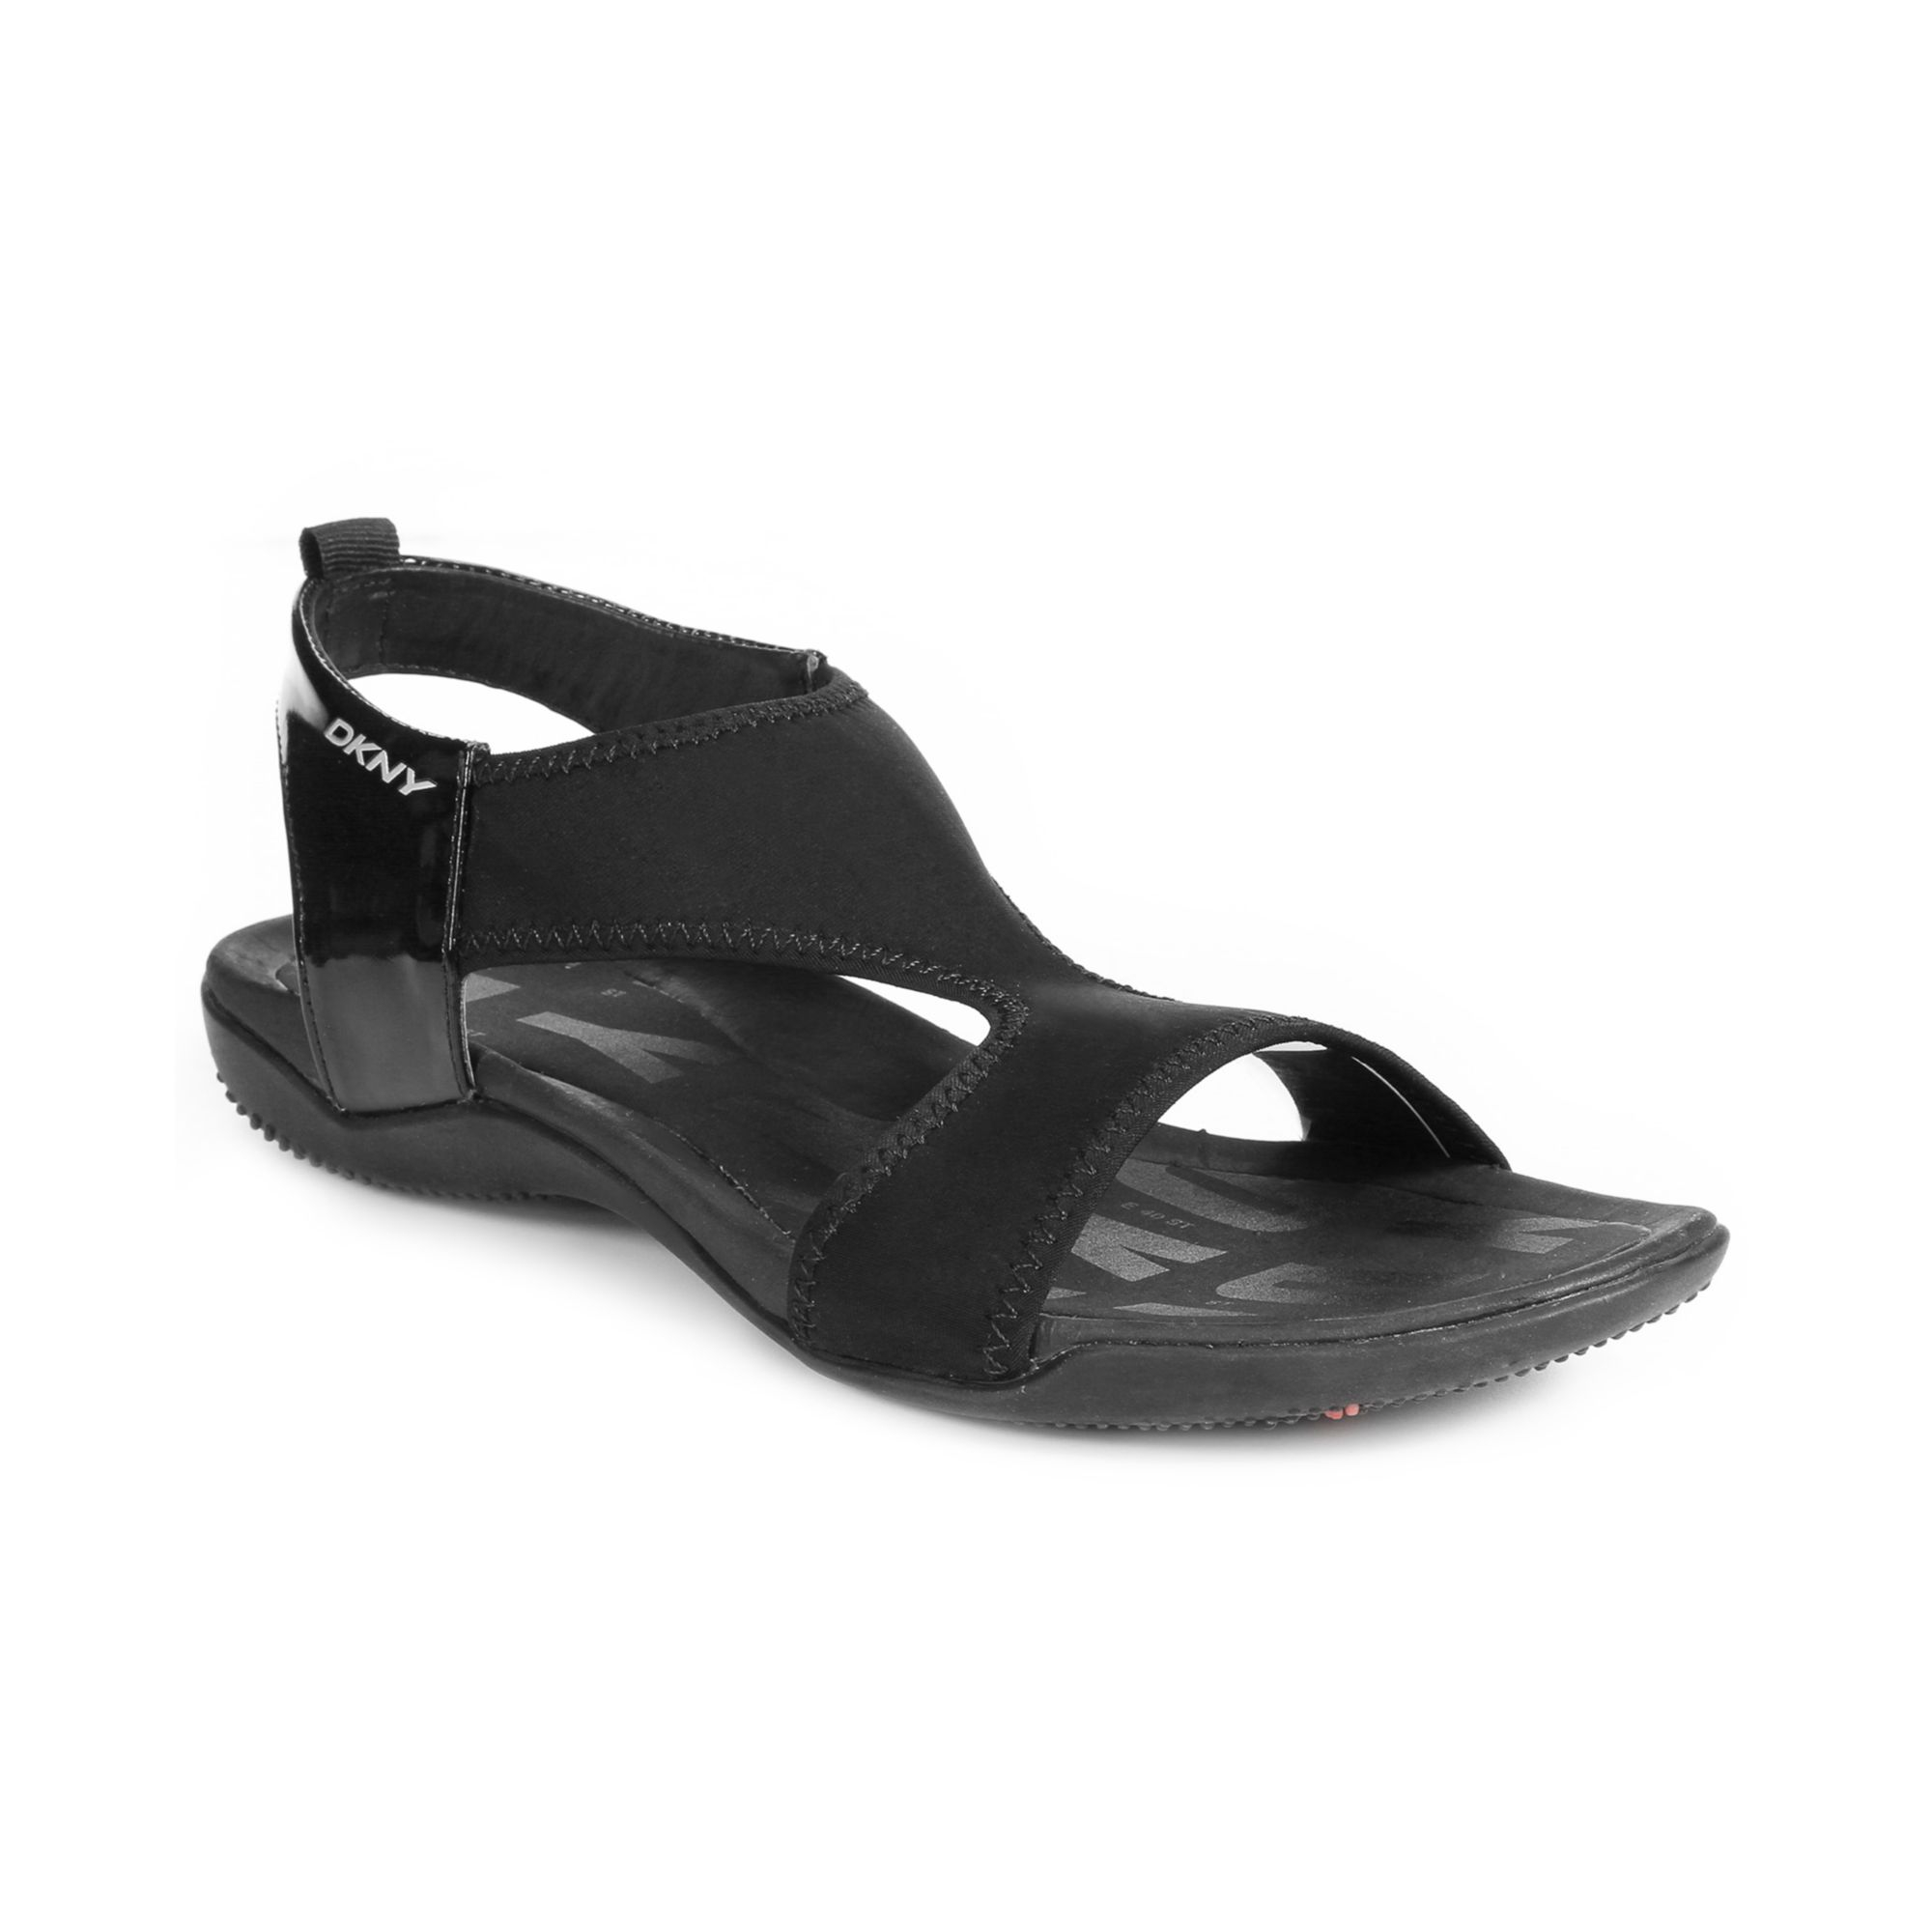 lyst dkny shoreline sandals in black